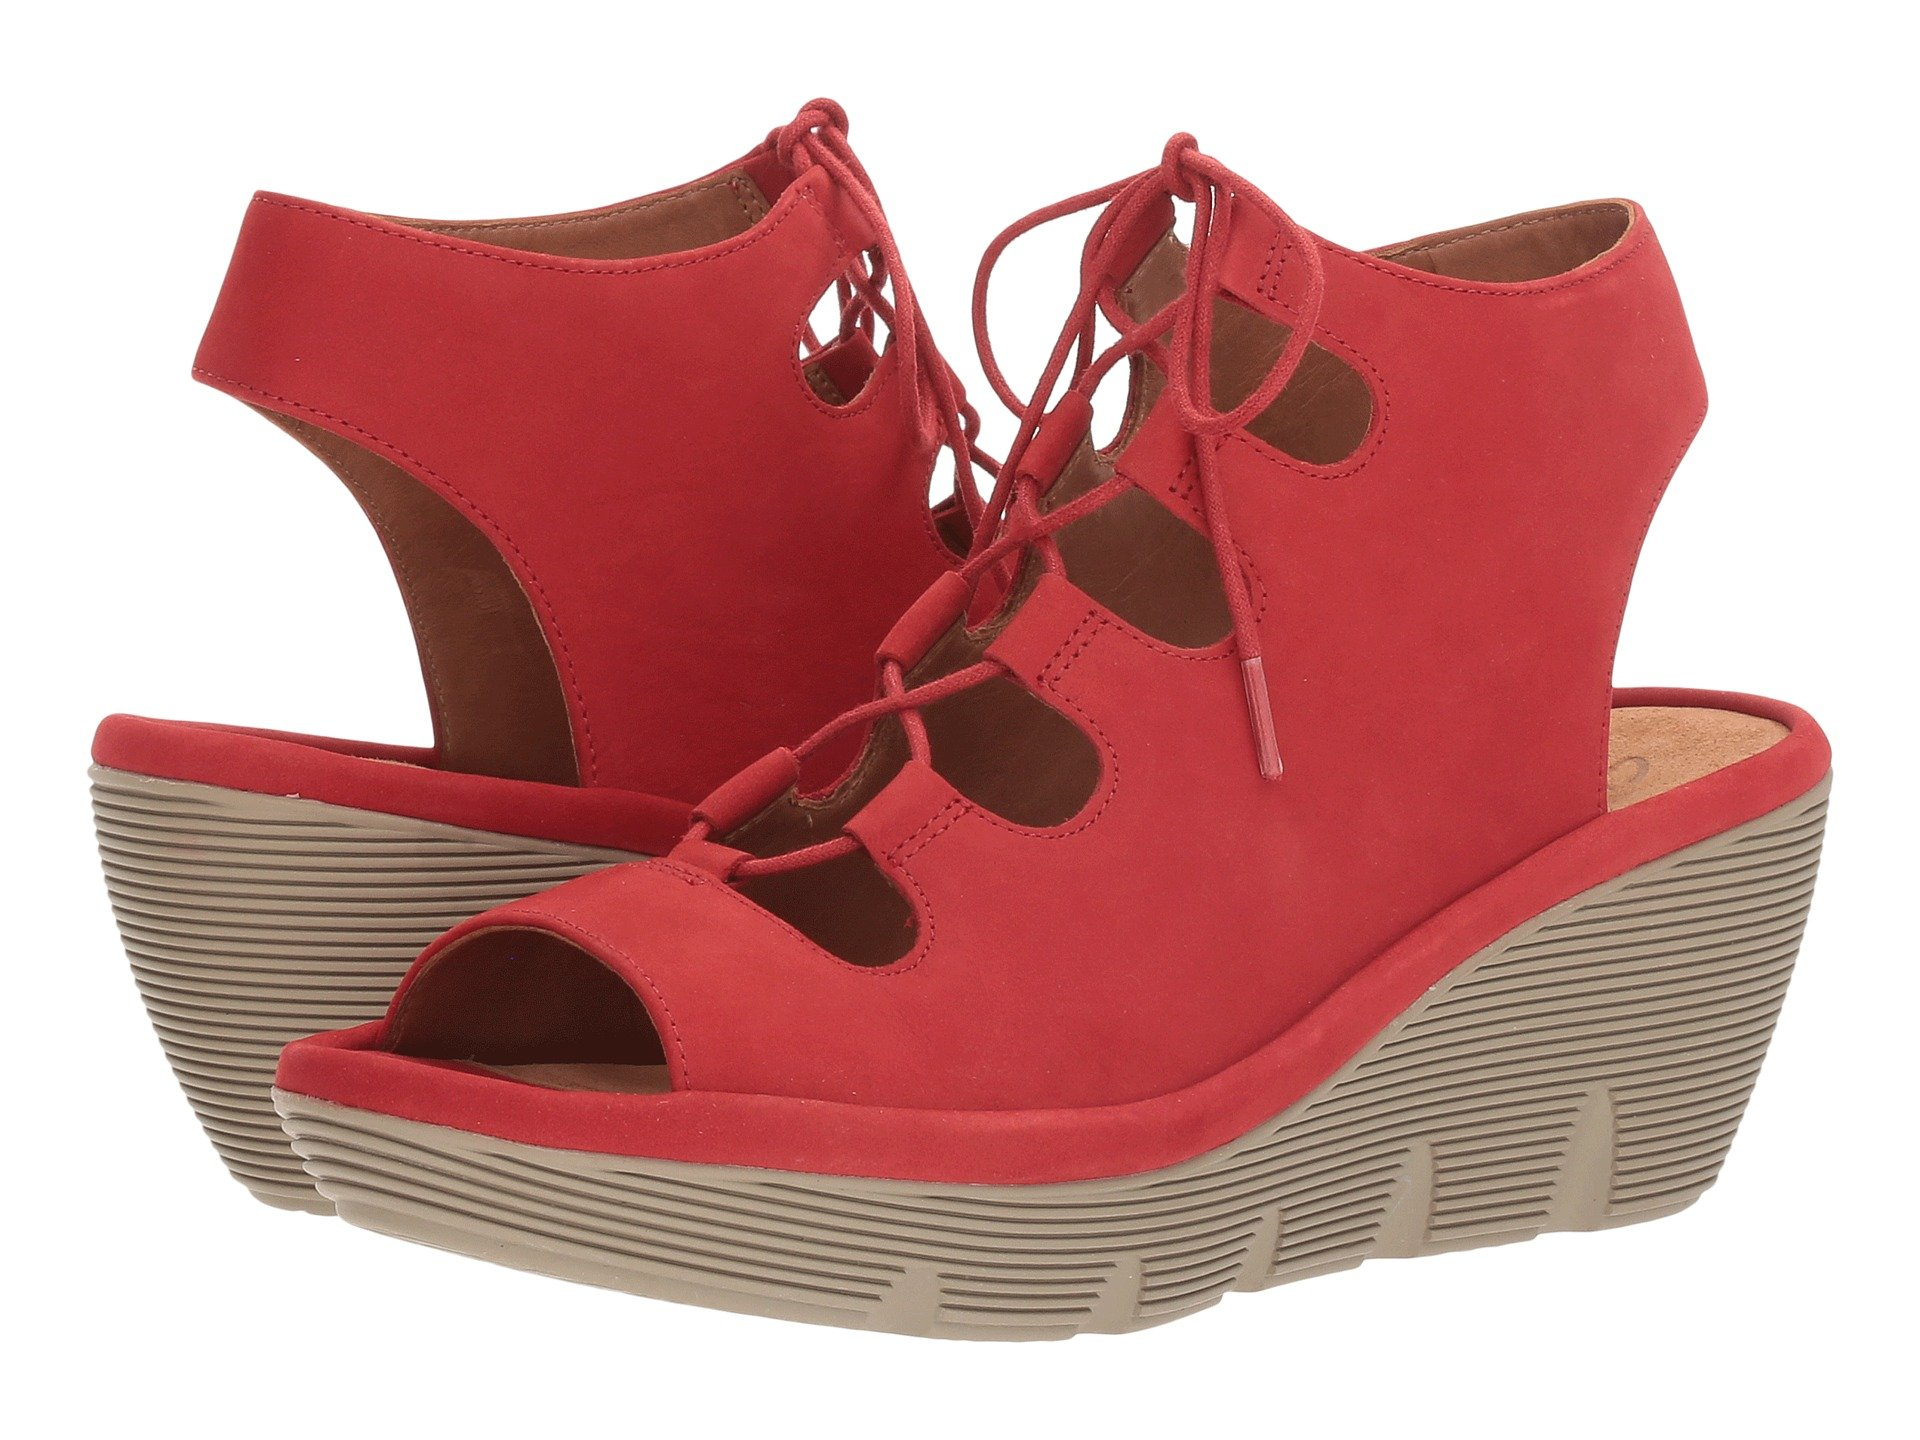 cc497820793 Clarks Clarene Grace In Red Nubuck